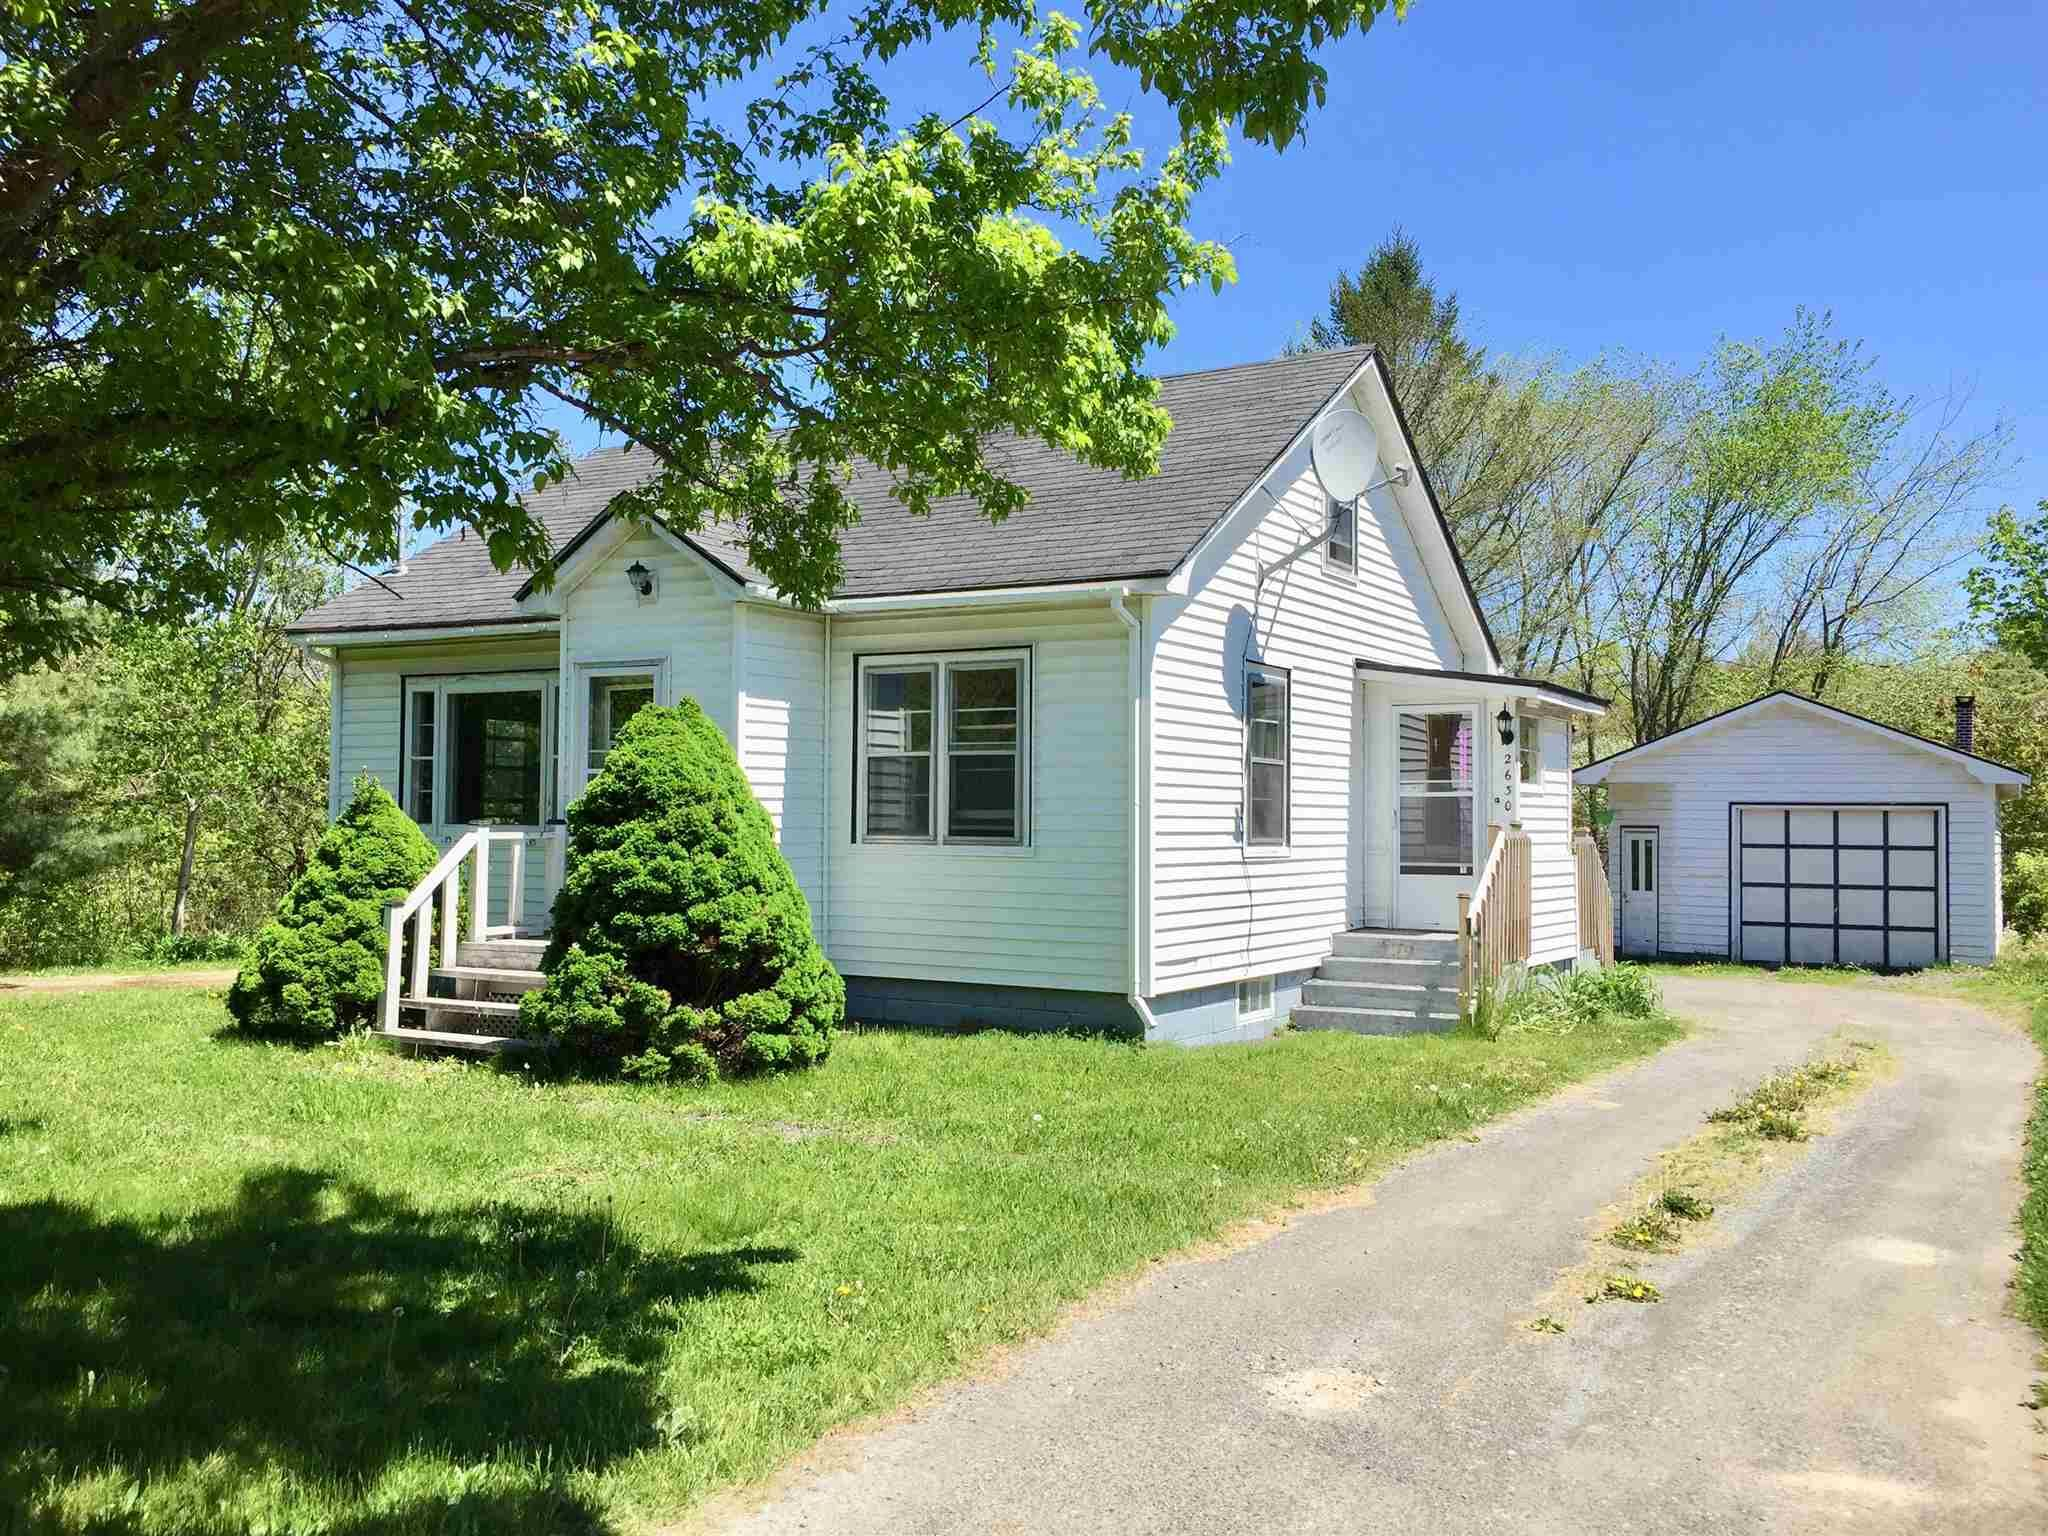 Main Photo: 2630 Highway 1 in Aylesford: 404-Kings County Residential for sale (Annapolis Valley)  : MLS®# 202113039